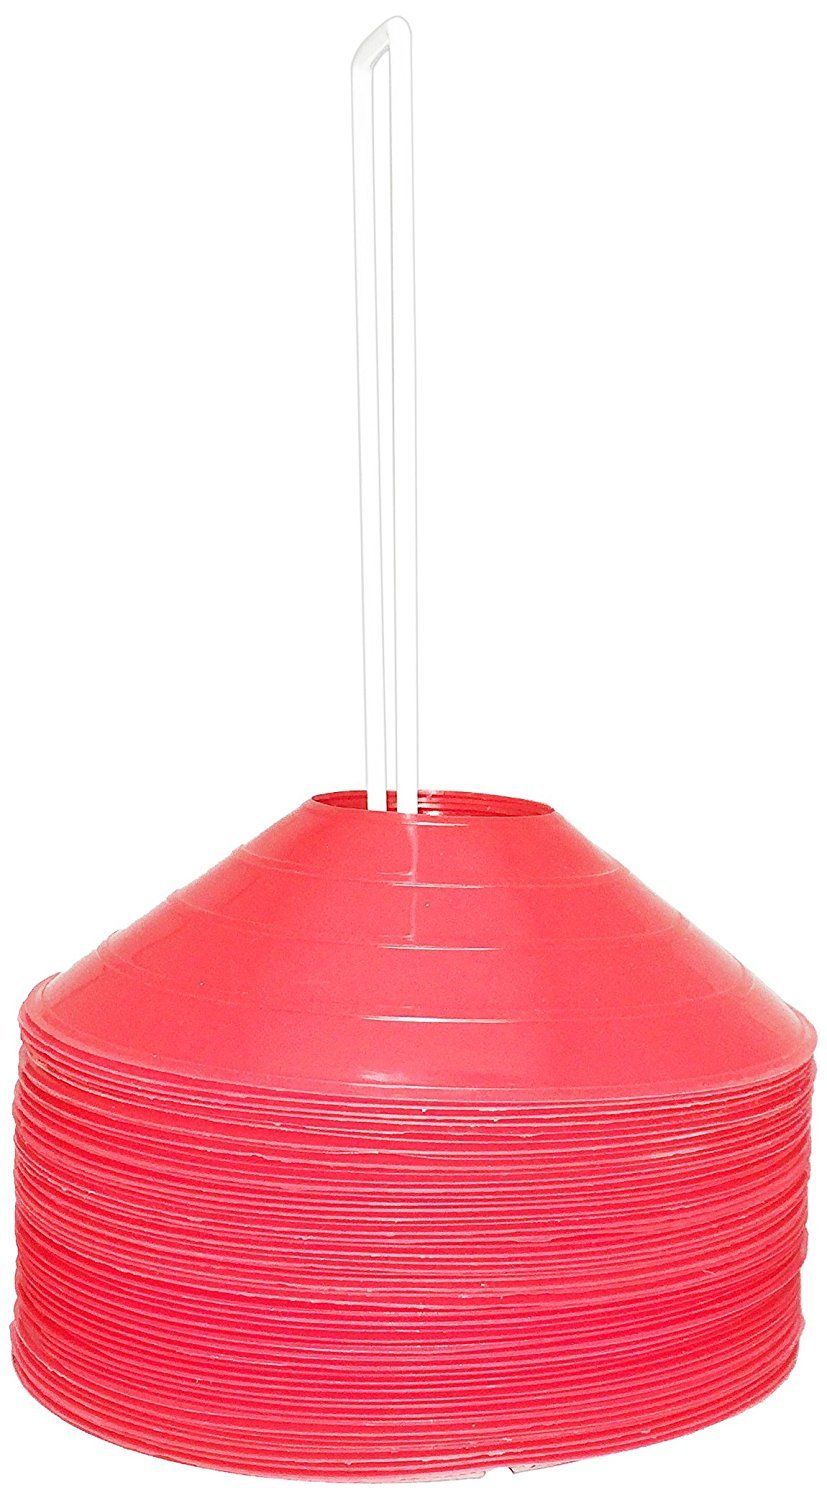 Bluedot Trading Sport Disc Cones (50 Pack), Red